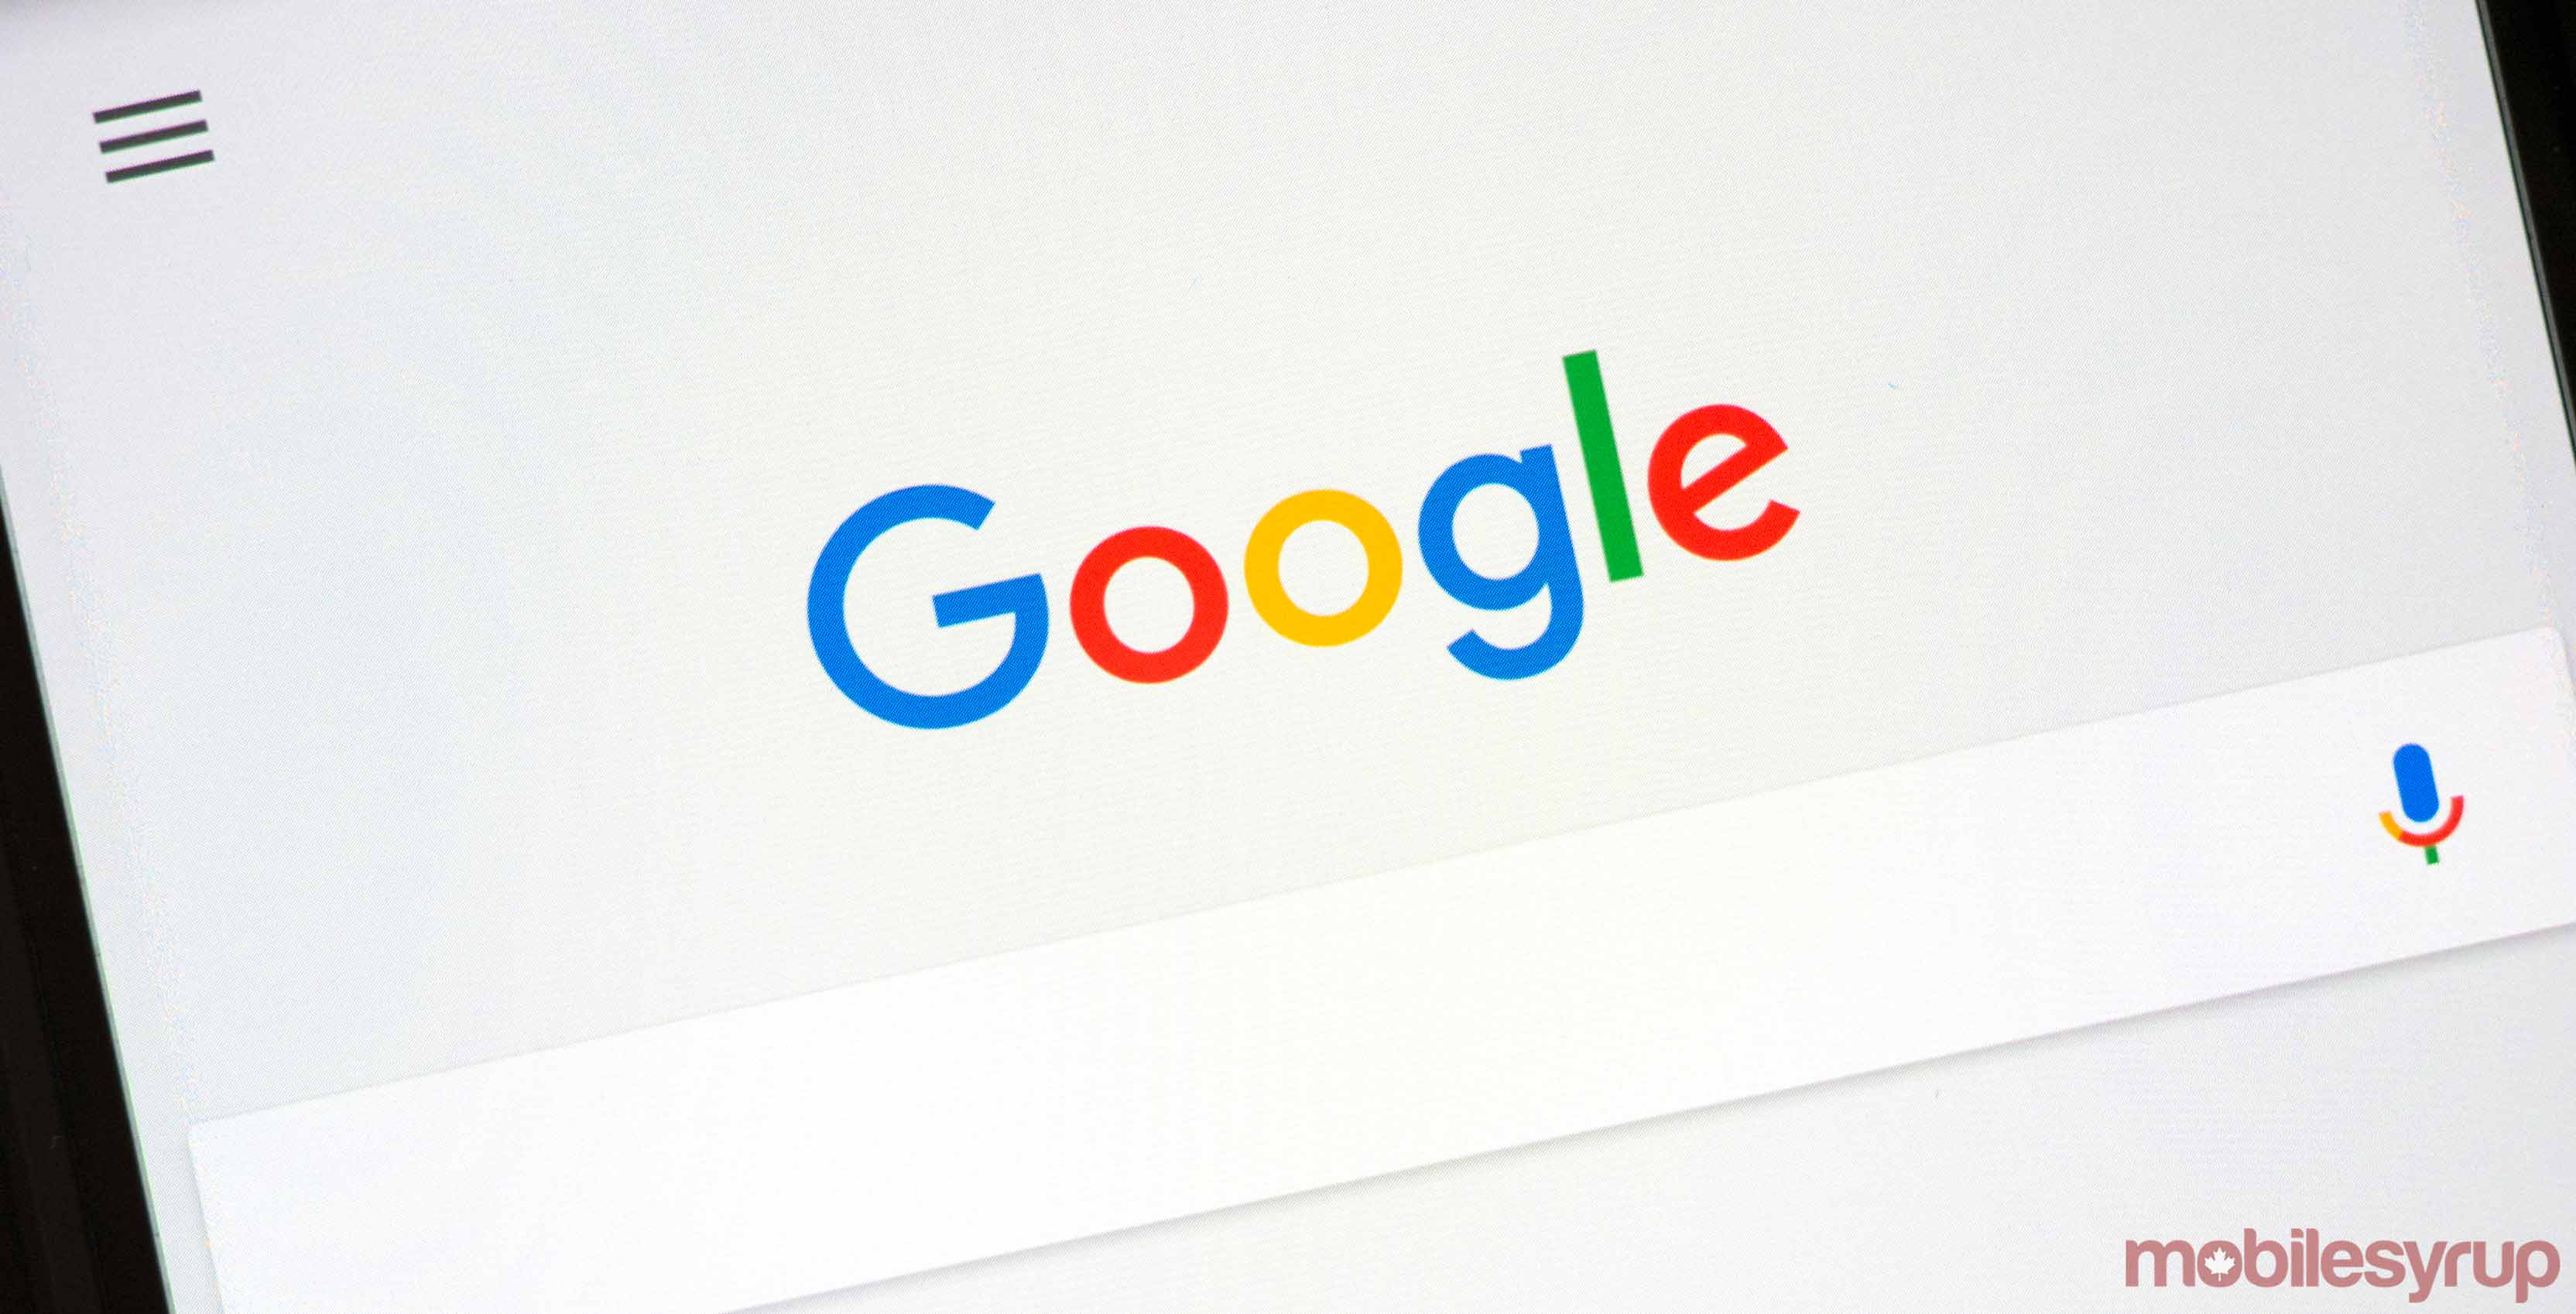 Photo of Google's search engine on a phone